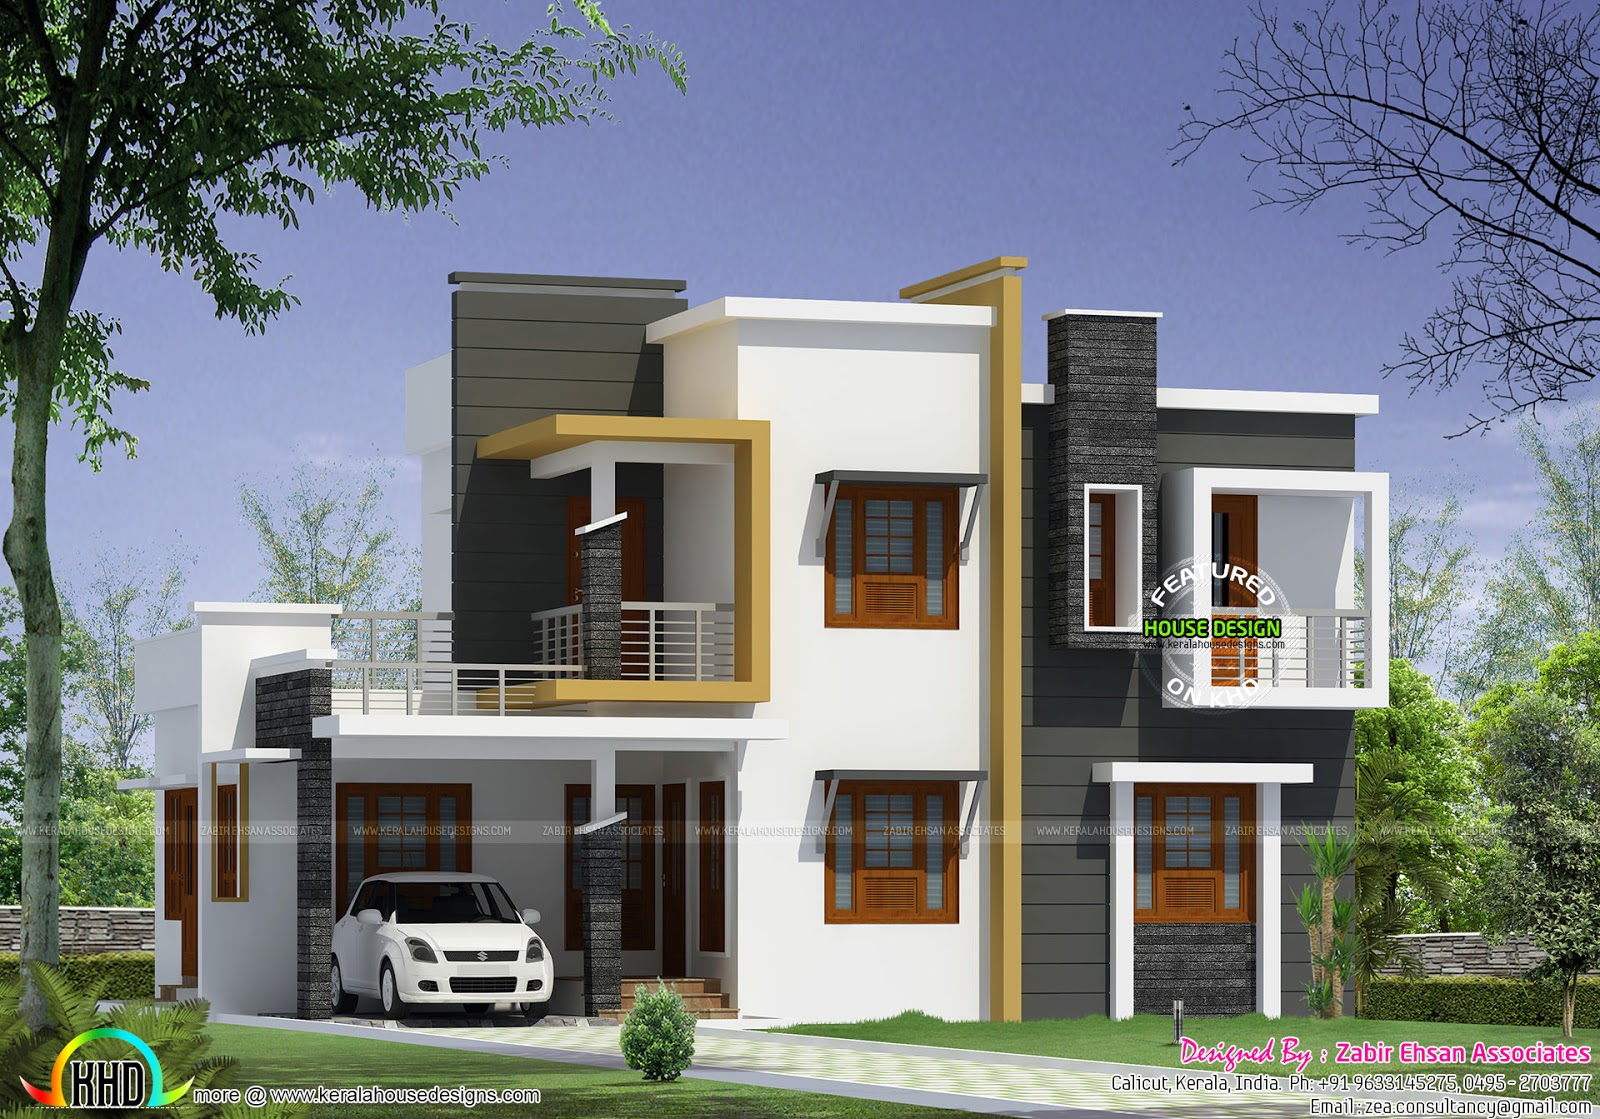 Box type modern house plan kerala home design and floor for New home blueprints photos